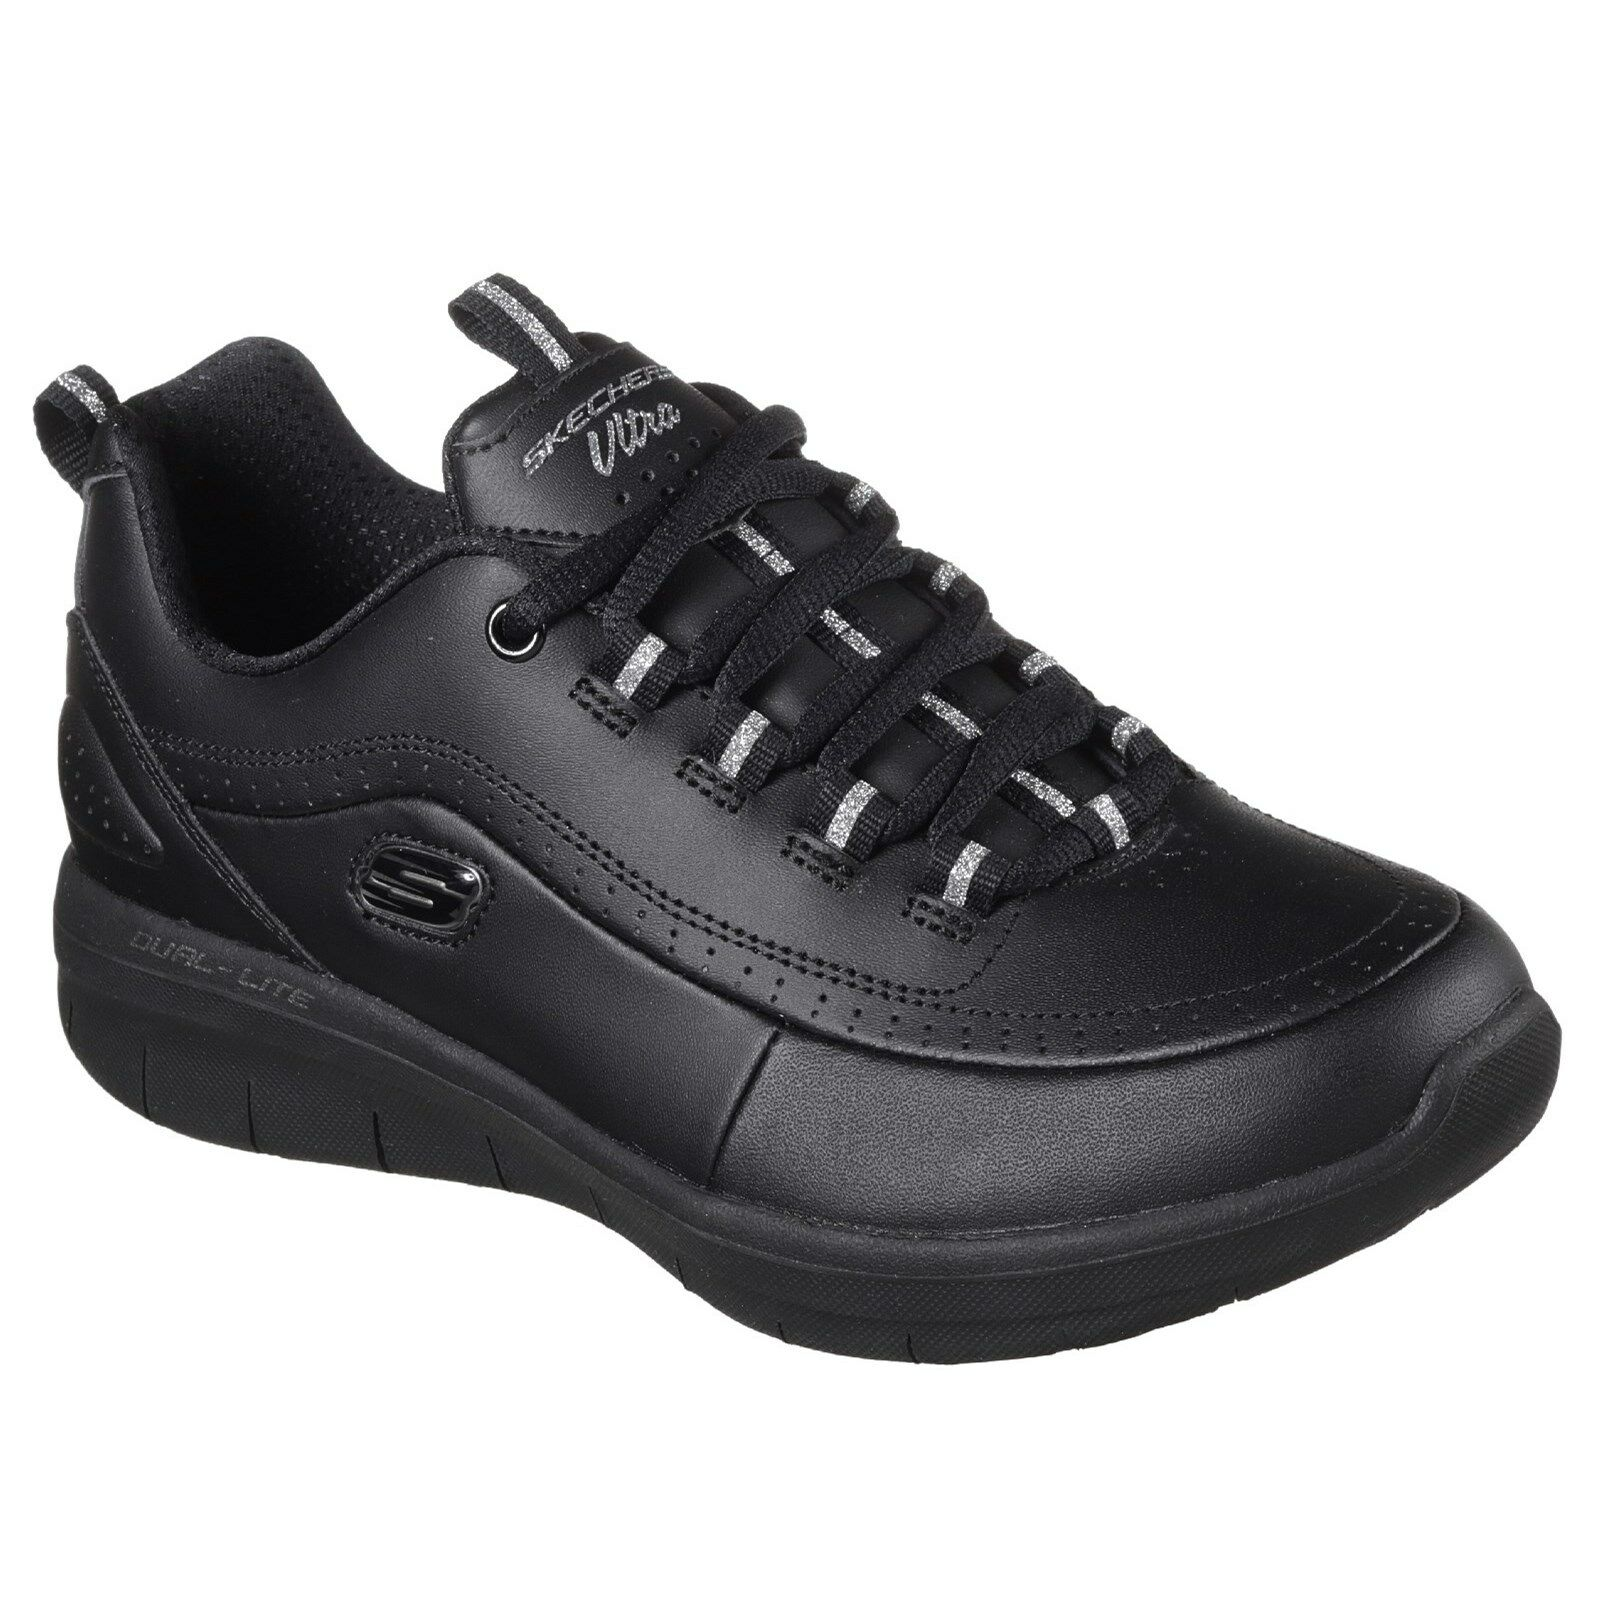 Skechers Synergy 2.0 Leather Memory Foam shoes Womens Trainers Sports Fitness